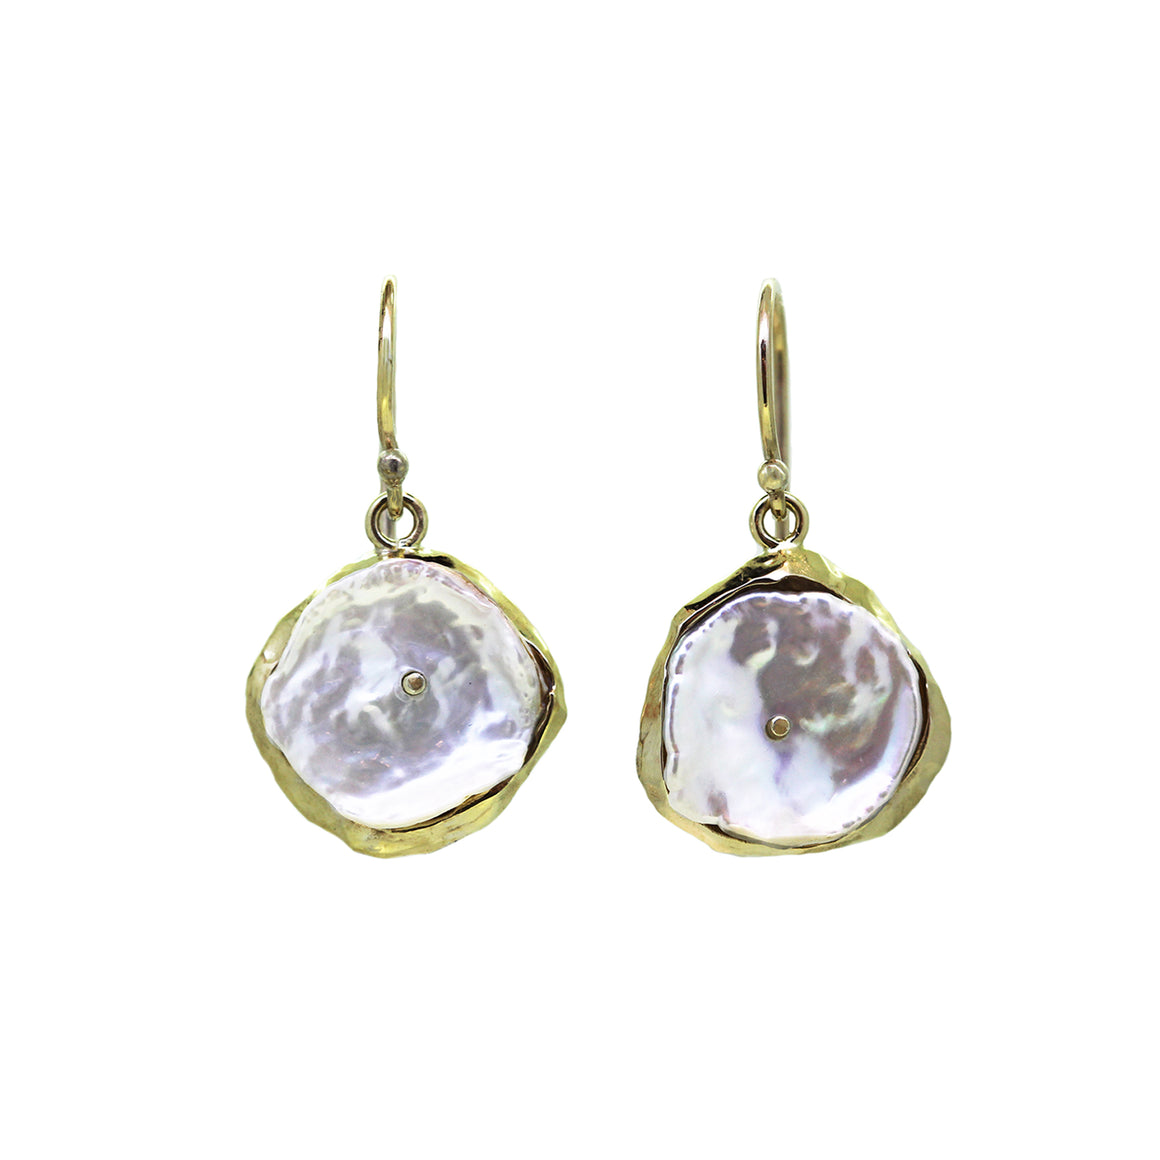 Doubloon Pearl Earrings